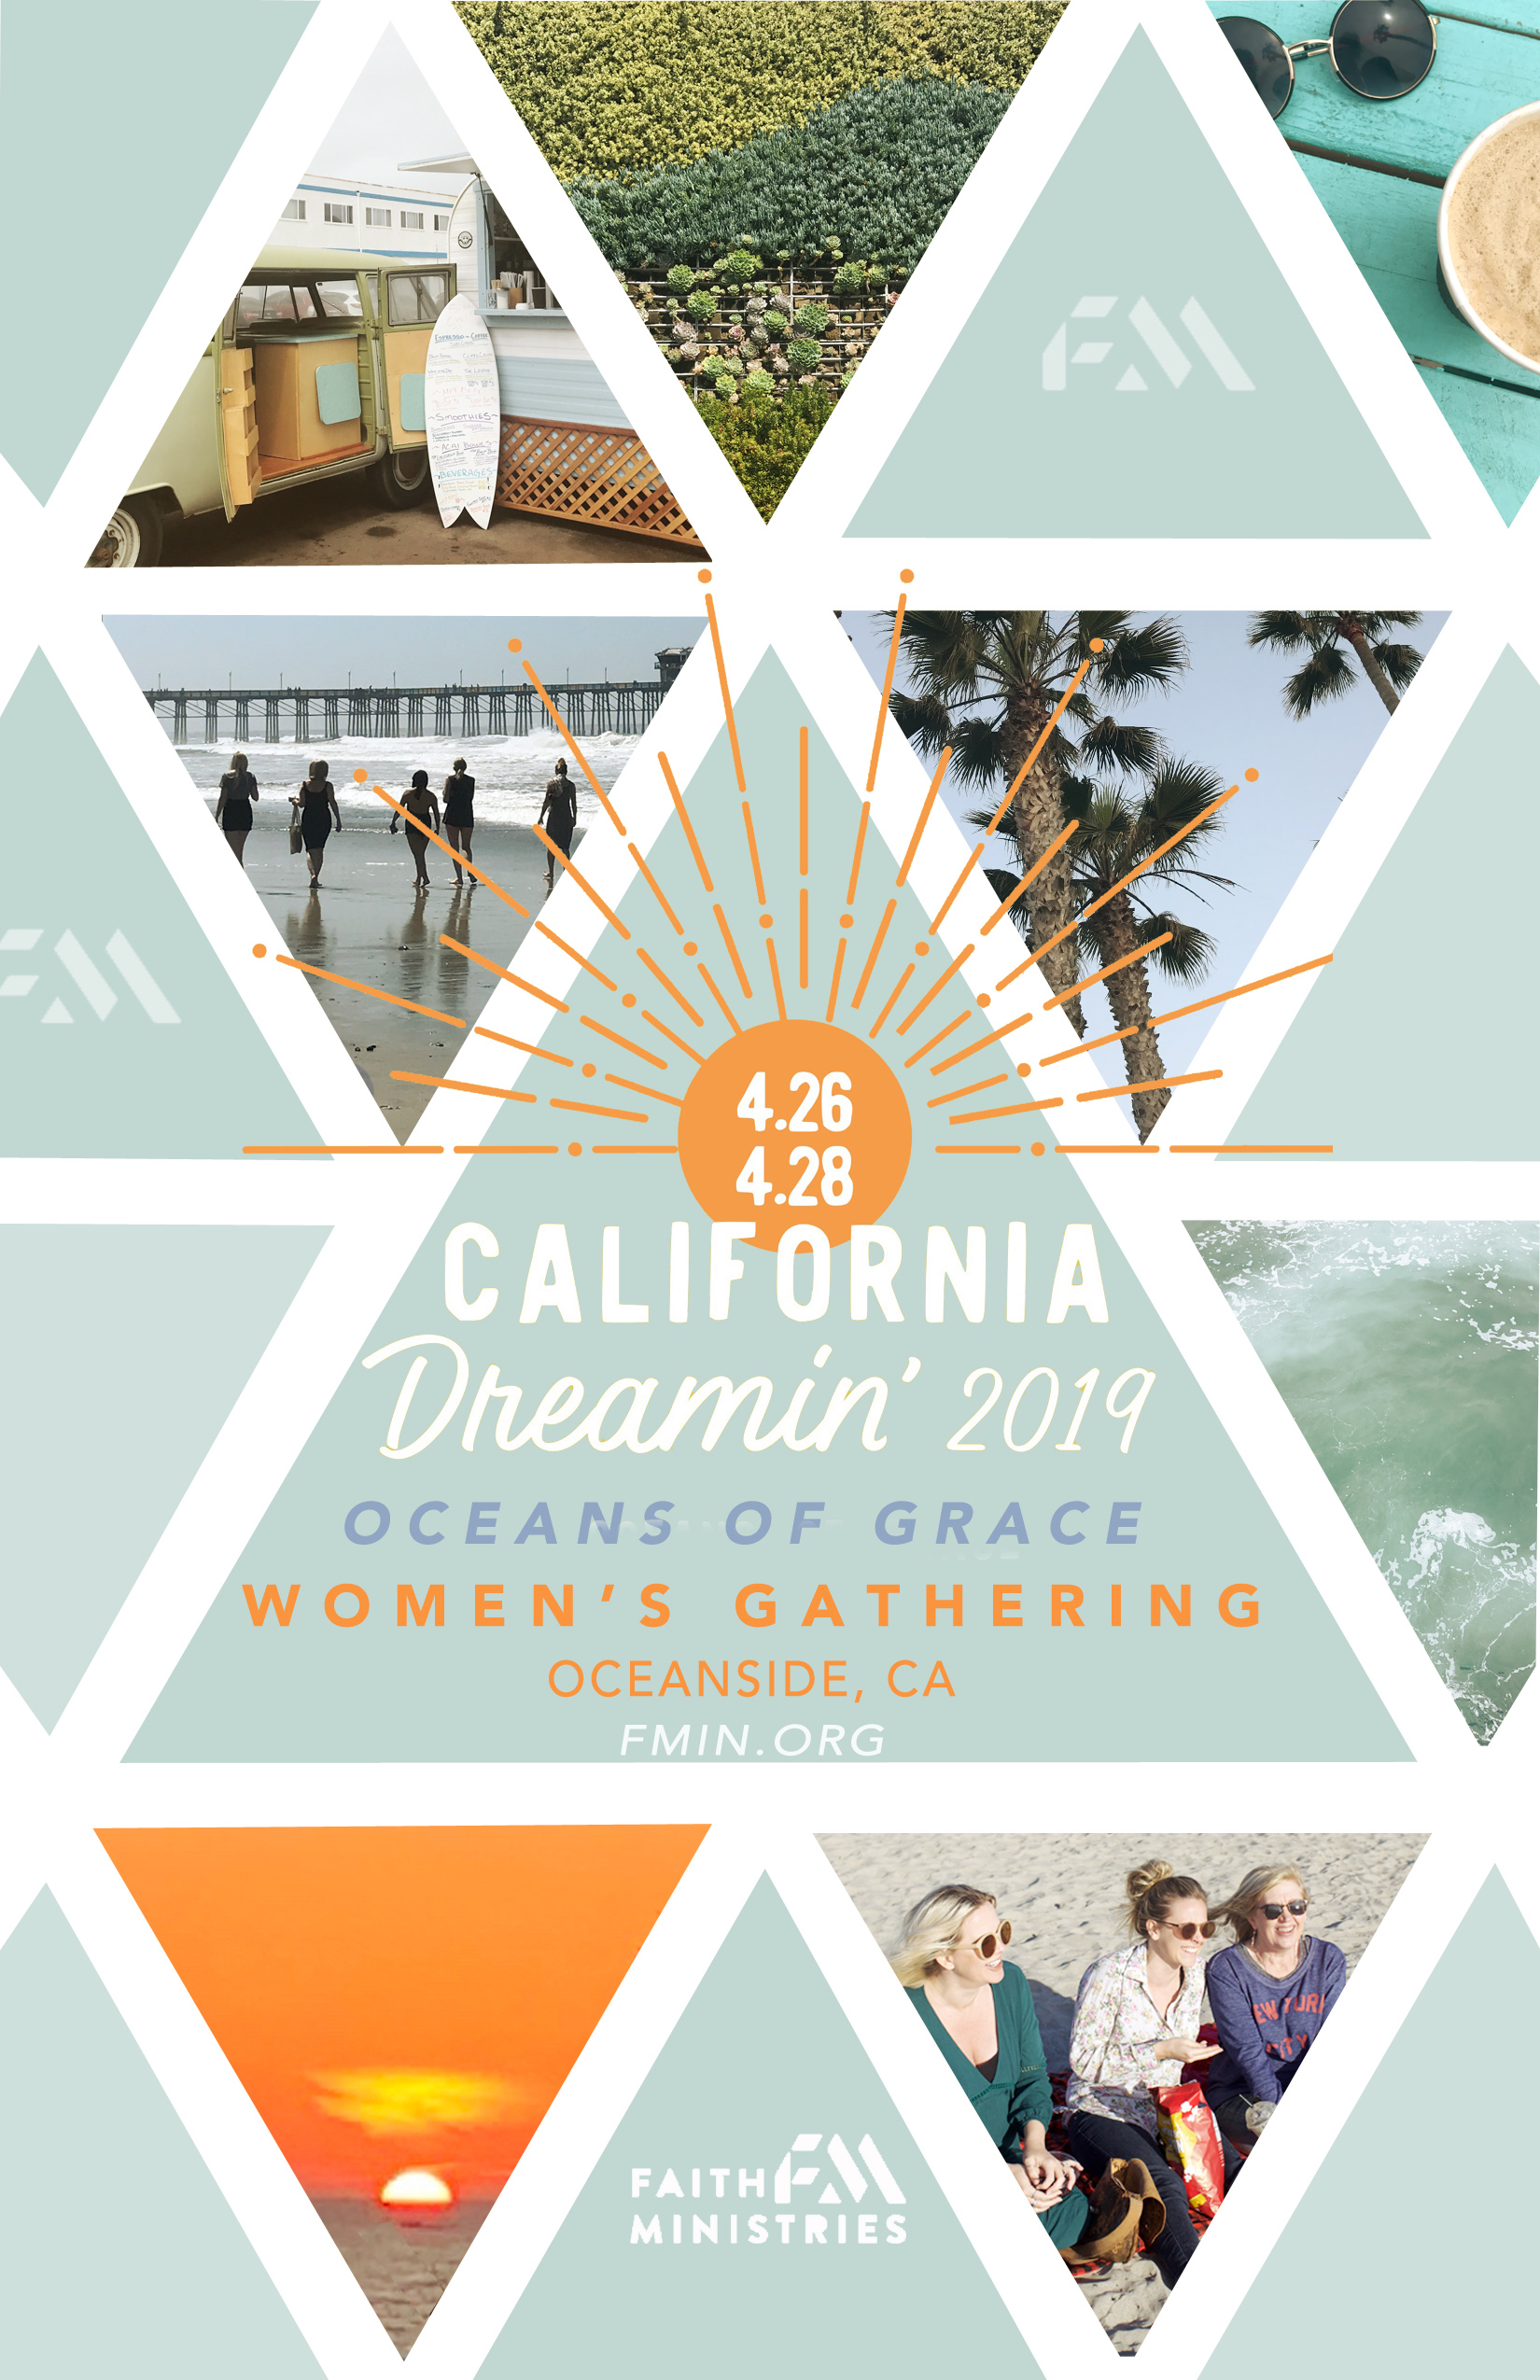 2019 California Dreaming - Women's Gathering